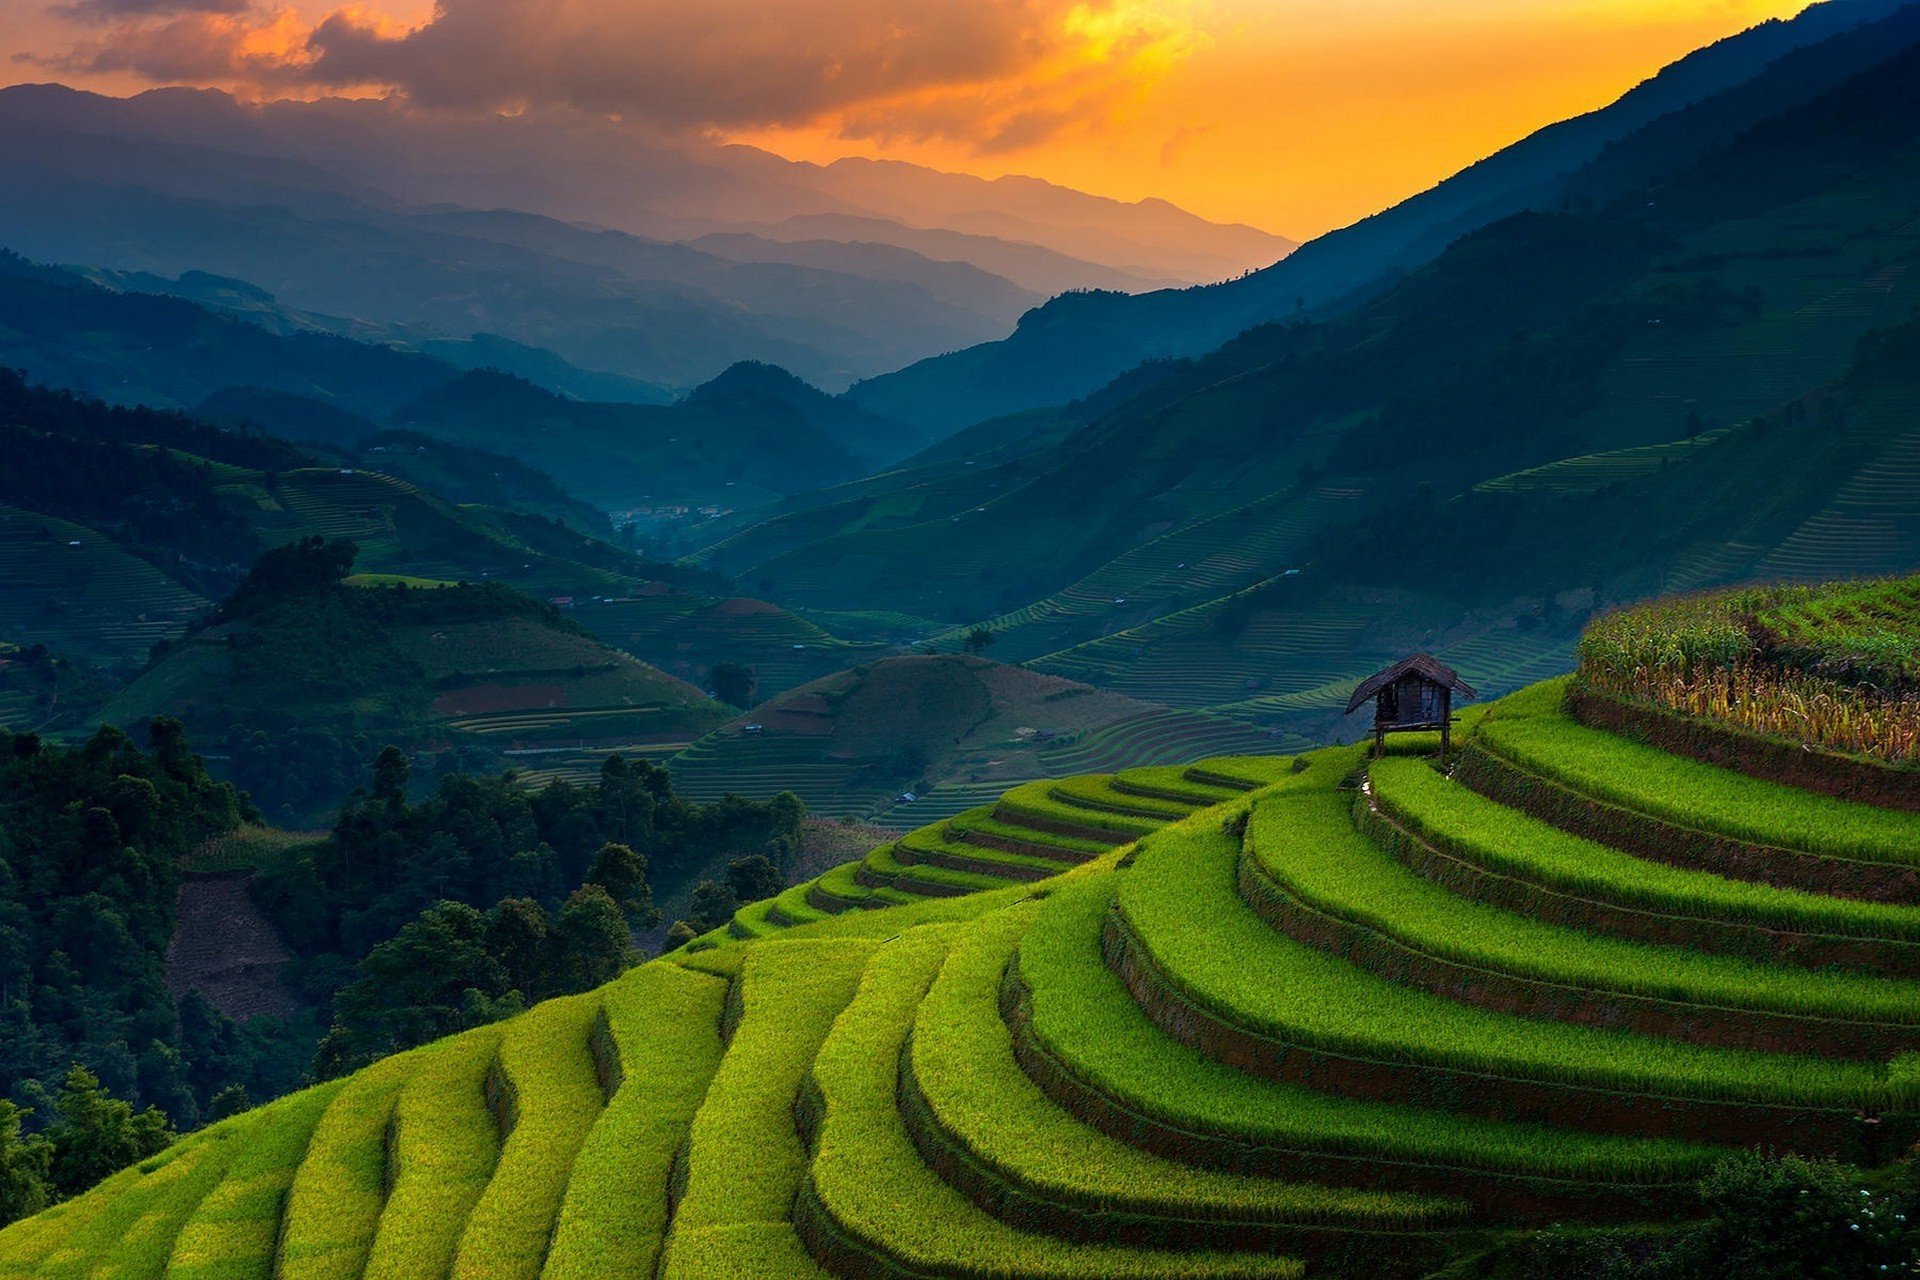 1920x1280 landscape, Nature, Rice Paddy, Terraces, Mountain, Sunset, Field, Trees,  Mist, Green, Hut, Vietnam, Sunlight Wallpapers HD / Desktop and Mobile  Backgrounds